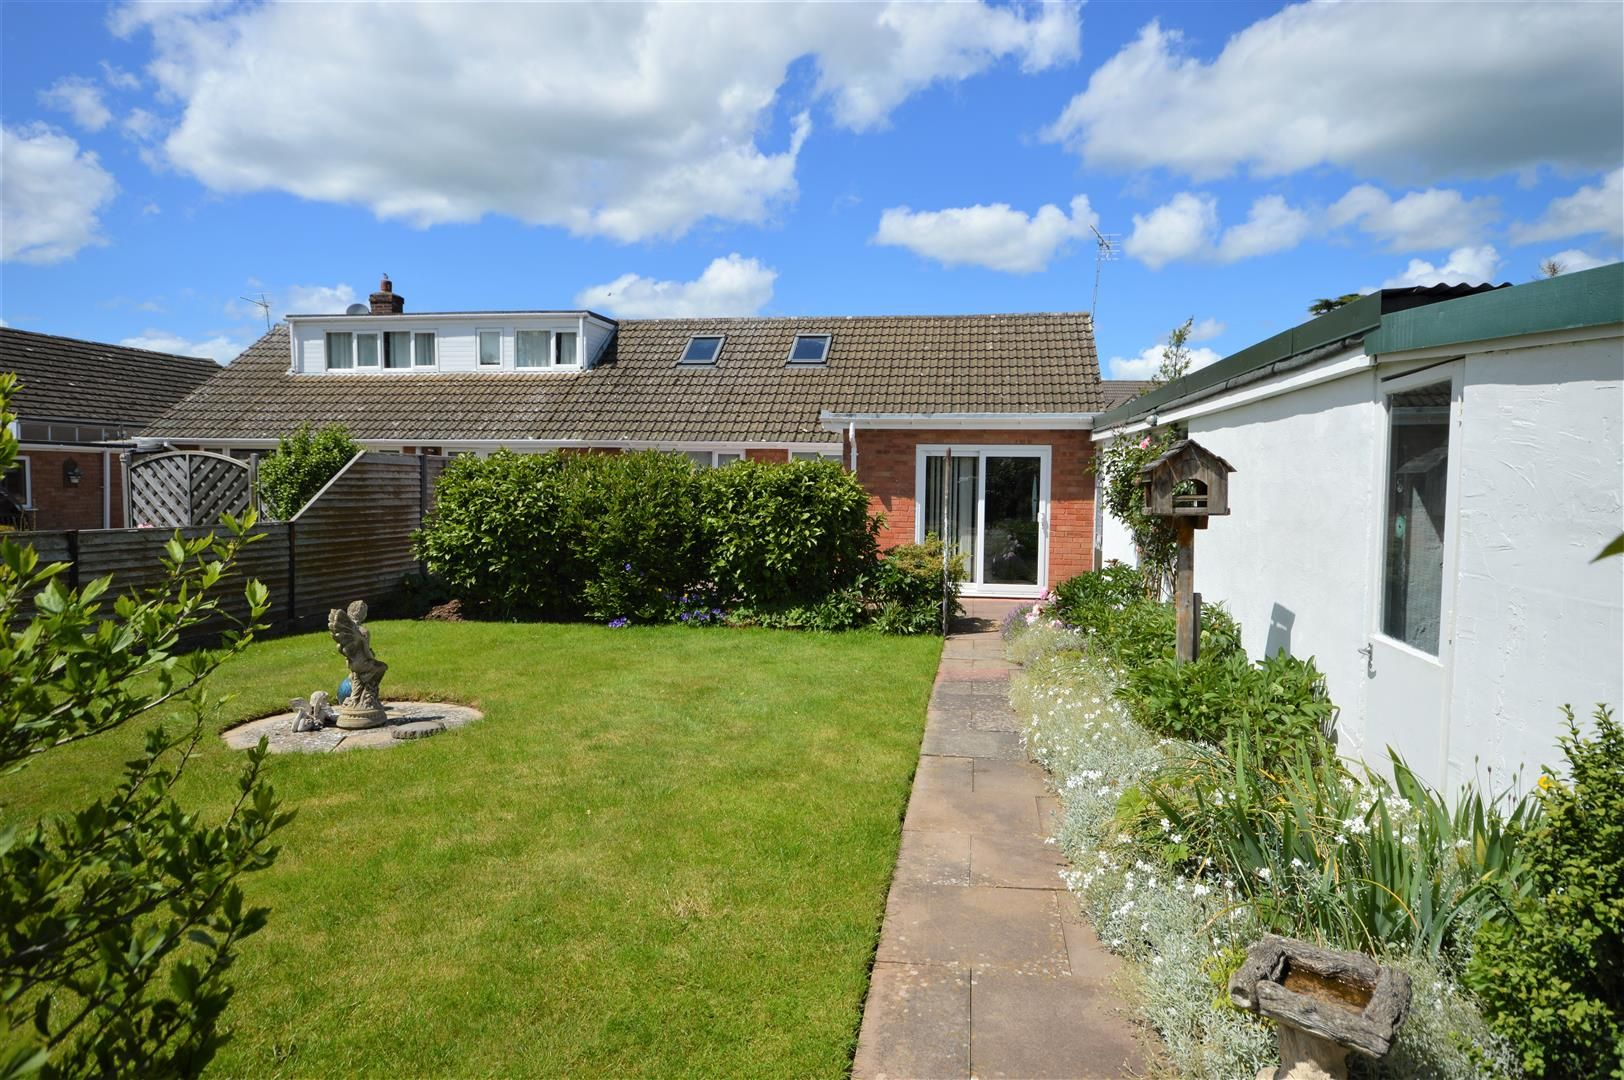 2 bed semi-detached-bungalow for sale in Leominster 12